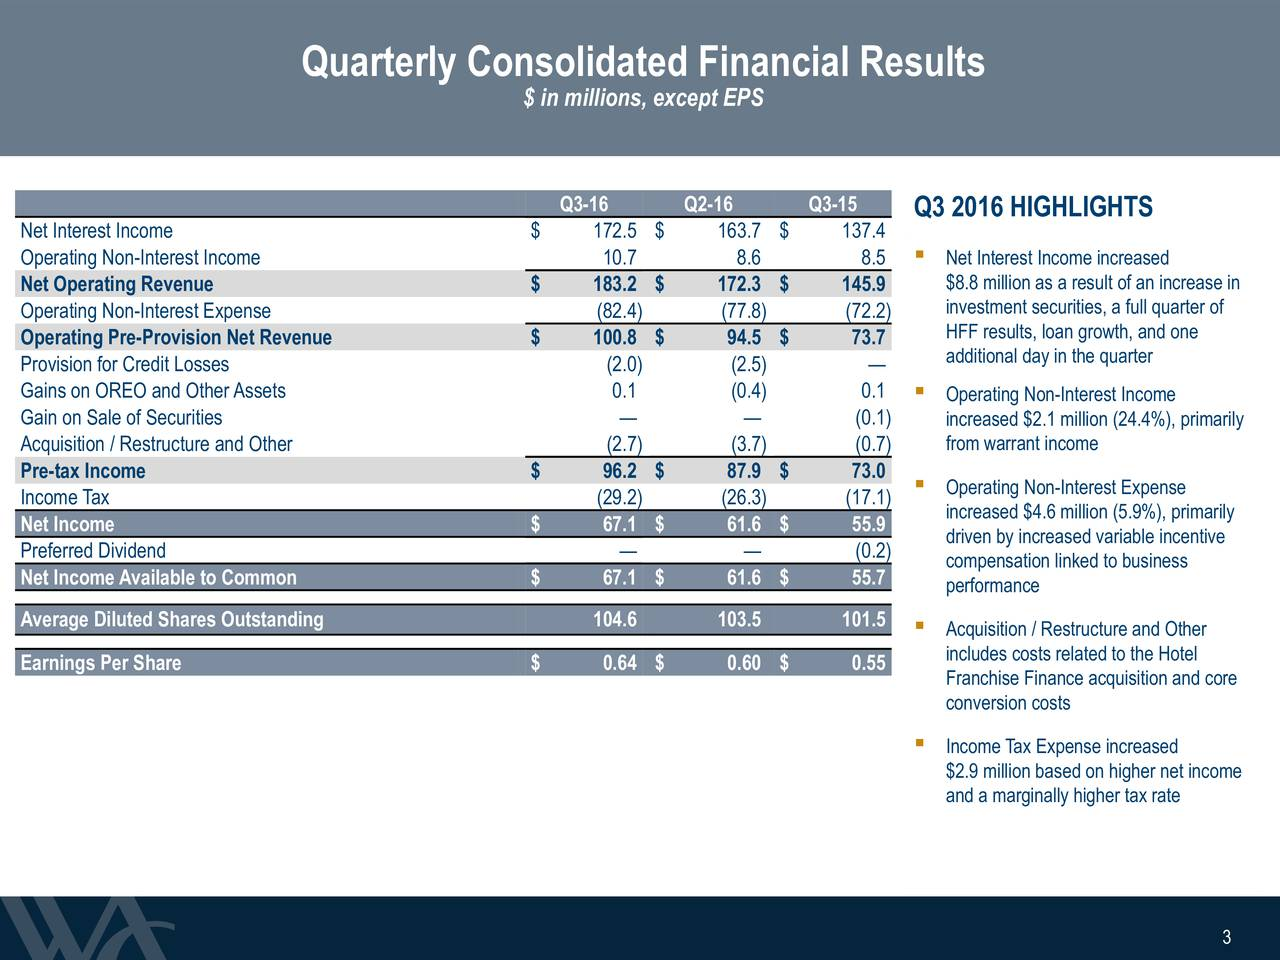 $ in millions, except EPS Q3-16 Q2-16 Q3-15 Q3 2016 HIGHLIGHTS Net Interest Income $ 172.5 $ 163.7 $ 137.4 Operating Non-Interest Income 10.7 8.6 8.5  Net Interest Income increased Net Operating Revenue $ 183.2 $ 172.3 $ 145.9 $8.8 million as a result of an increase in investment securities, a full quarter of Operating Non-Interest Expense (82.4) (77.8) (72.2) Operating Pre-Provision Net Revenue $ 100.8 $ 94.5 $ 73.7 HFF results, loan growth, and one Provision for Credit Losses (2.0) (2.5)  additional day in the quarter Gains on OREO and OtherAssets 0.1 (0.4) 0.1  Operating Non-Interest Income Gain on Sale of Securities   (0.1) increased $2.1 million (24.4%), primarily Acquisition / Restructure and Other (2.7) (3.7) (0.7) from warrant income Pre-tax Income $ 96.2 $ 87.9 $ 73.0 Income Tax (29.2) (26.3) (17.1)  Operating Non-Interest Expense Net Income $ 67.1 $ 61.6 $ 55.9 increased $4.6 million (5.9%), primarily driven by increased variable incentive Preferred Dividend   (0.2) compensation linked to business Net IncomeAvailable to Common $ 67.1 $ 61.6 $ 55.7 performance Average Diluted Shares Outstanding 104.6 103.5 101.5  Acquisition / Restructure and Other includes costs related to the Hotel Earnings Per Share $ 0.64 $ 0.60 $ 0.55 Franchise Finance acquisition and core conversion costs Income Tax Expense increased $2.9 million based on higher net income and a marginally higher tax rate 3 3